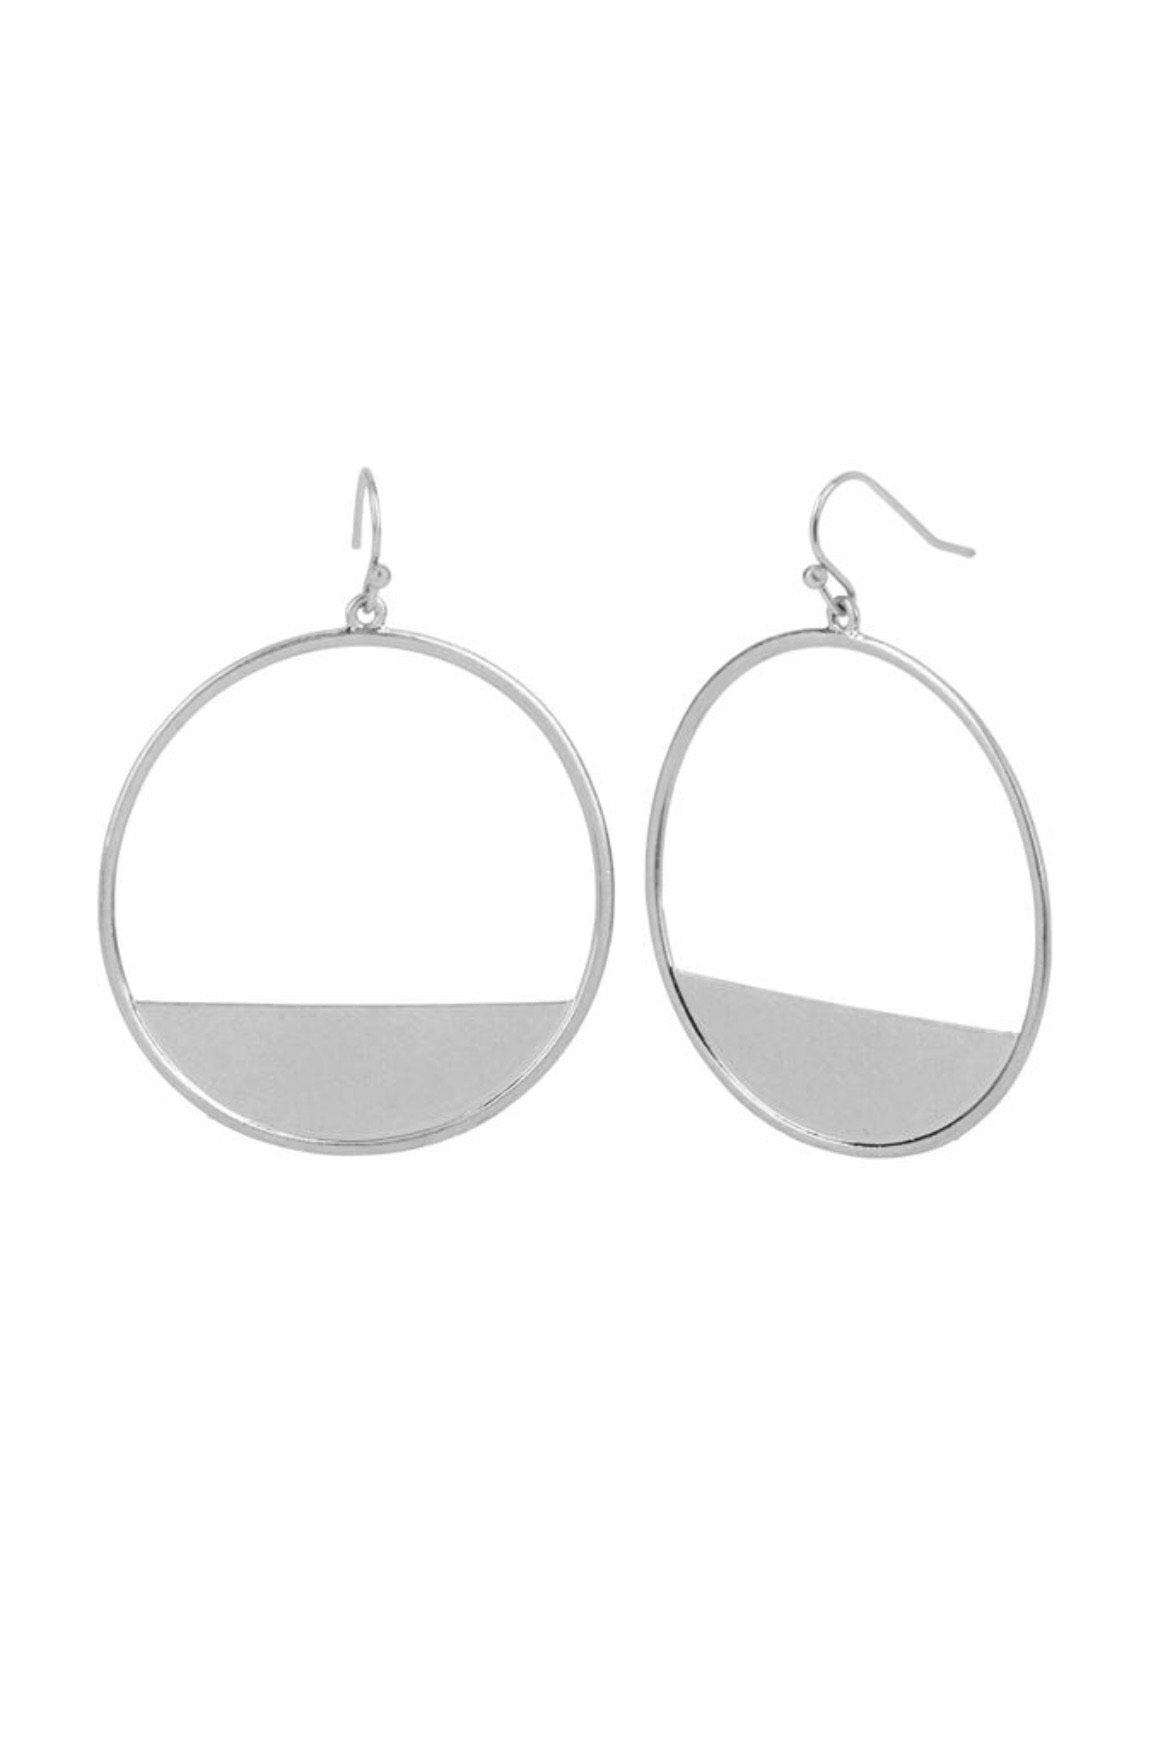 Silver Crescent Block Hoop Earrings JEWELRY Whispers